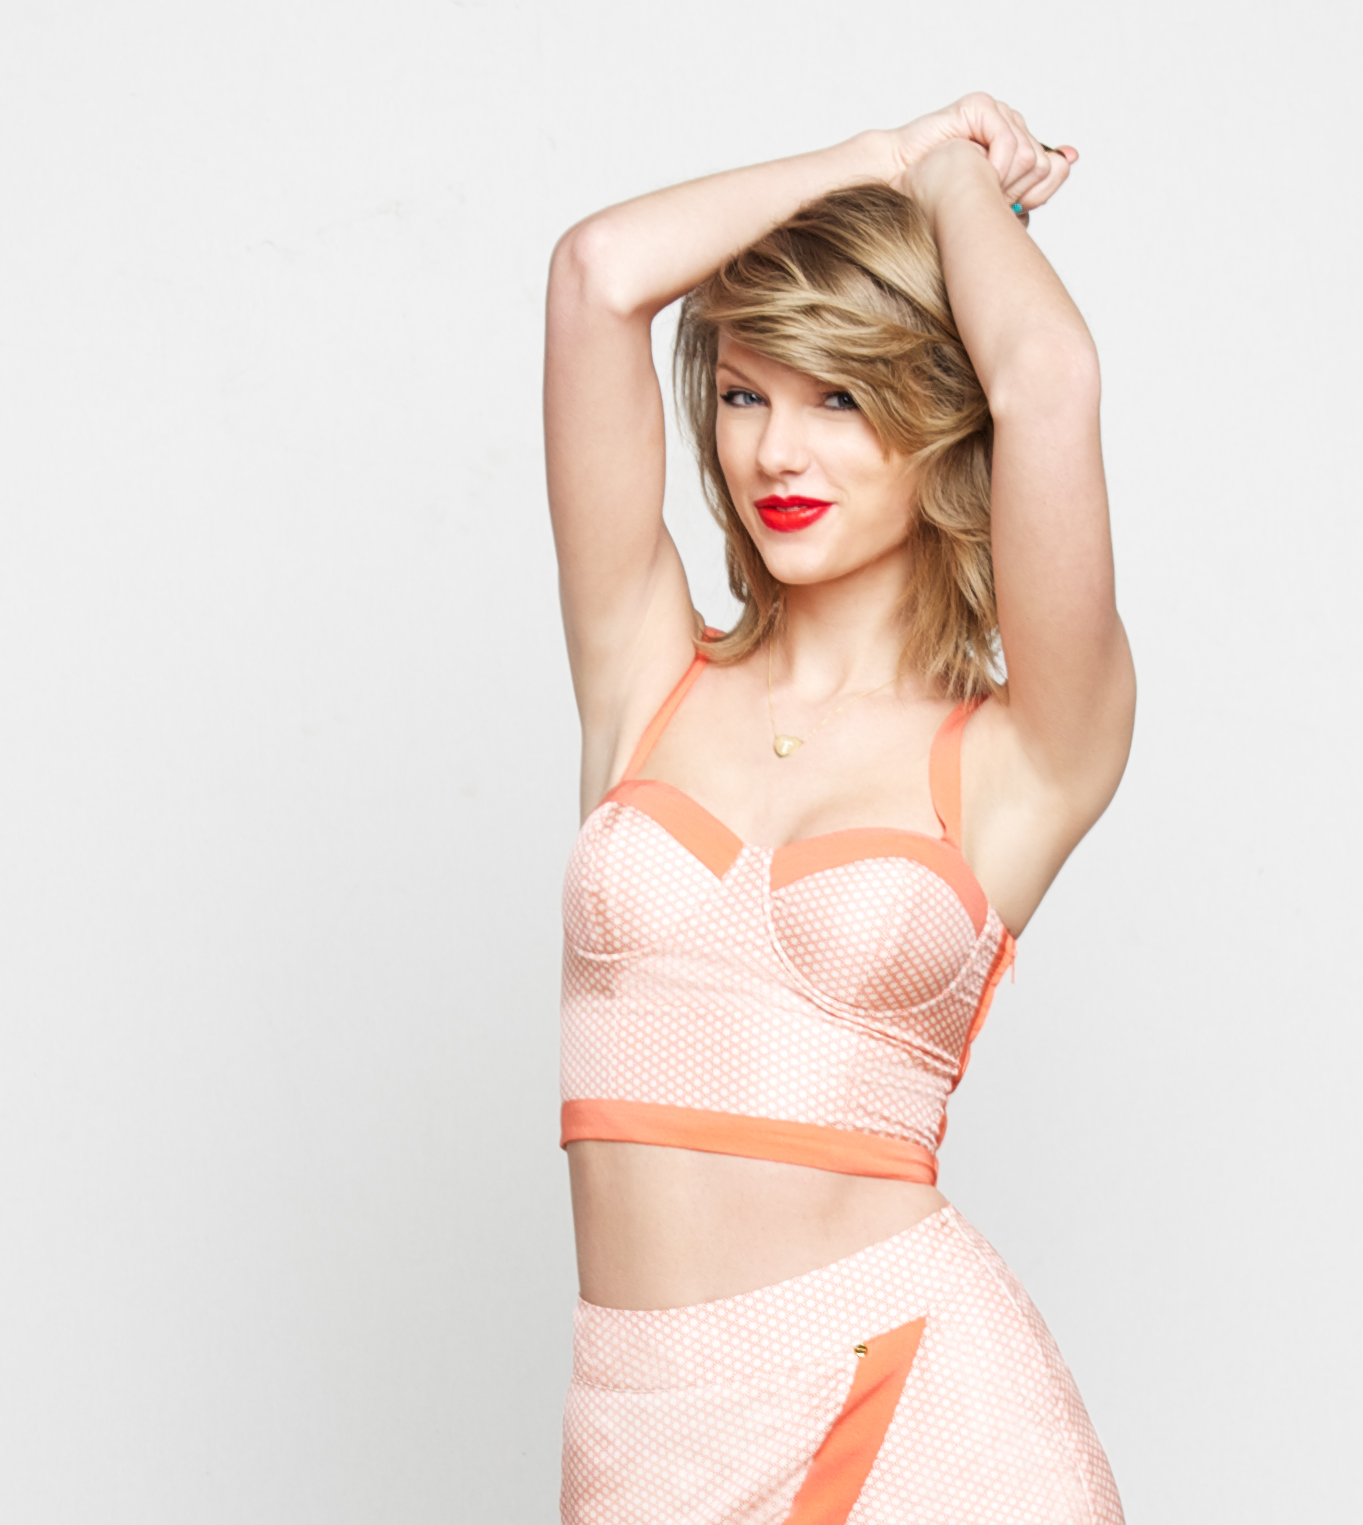 Taylor Swift Has a Discreet New Dating Strategy